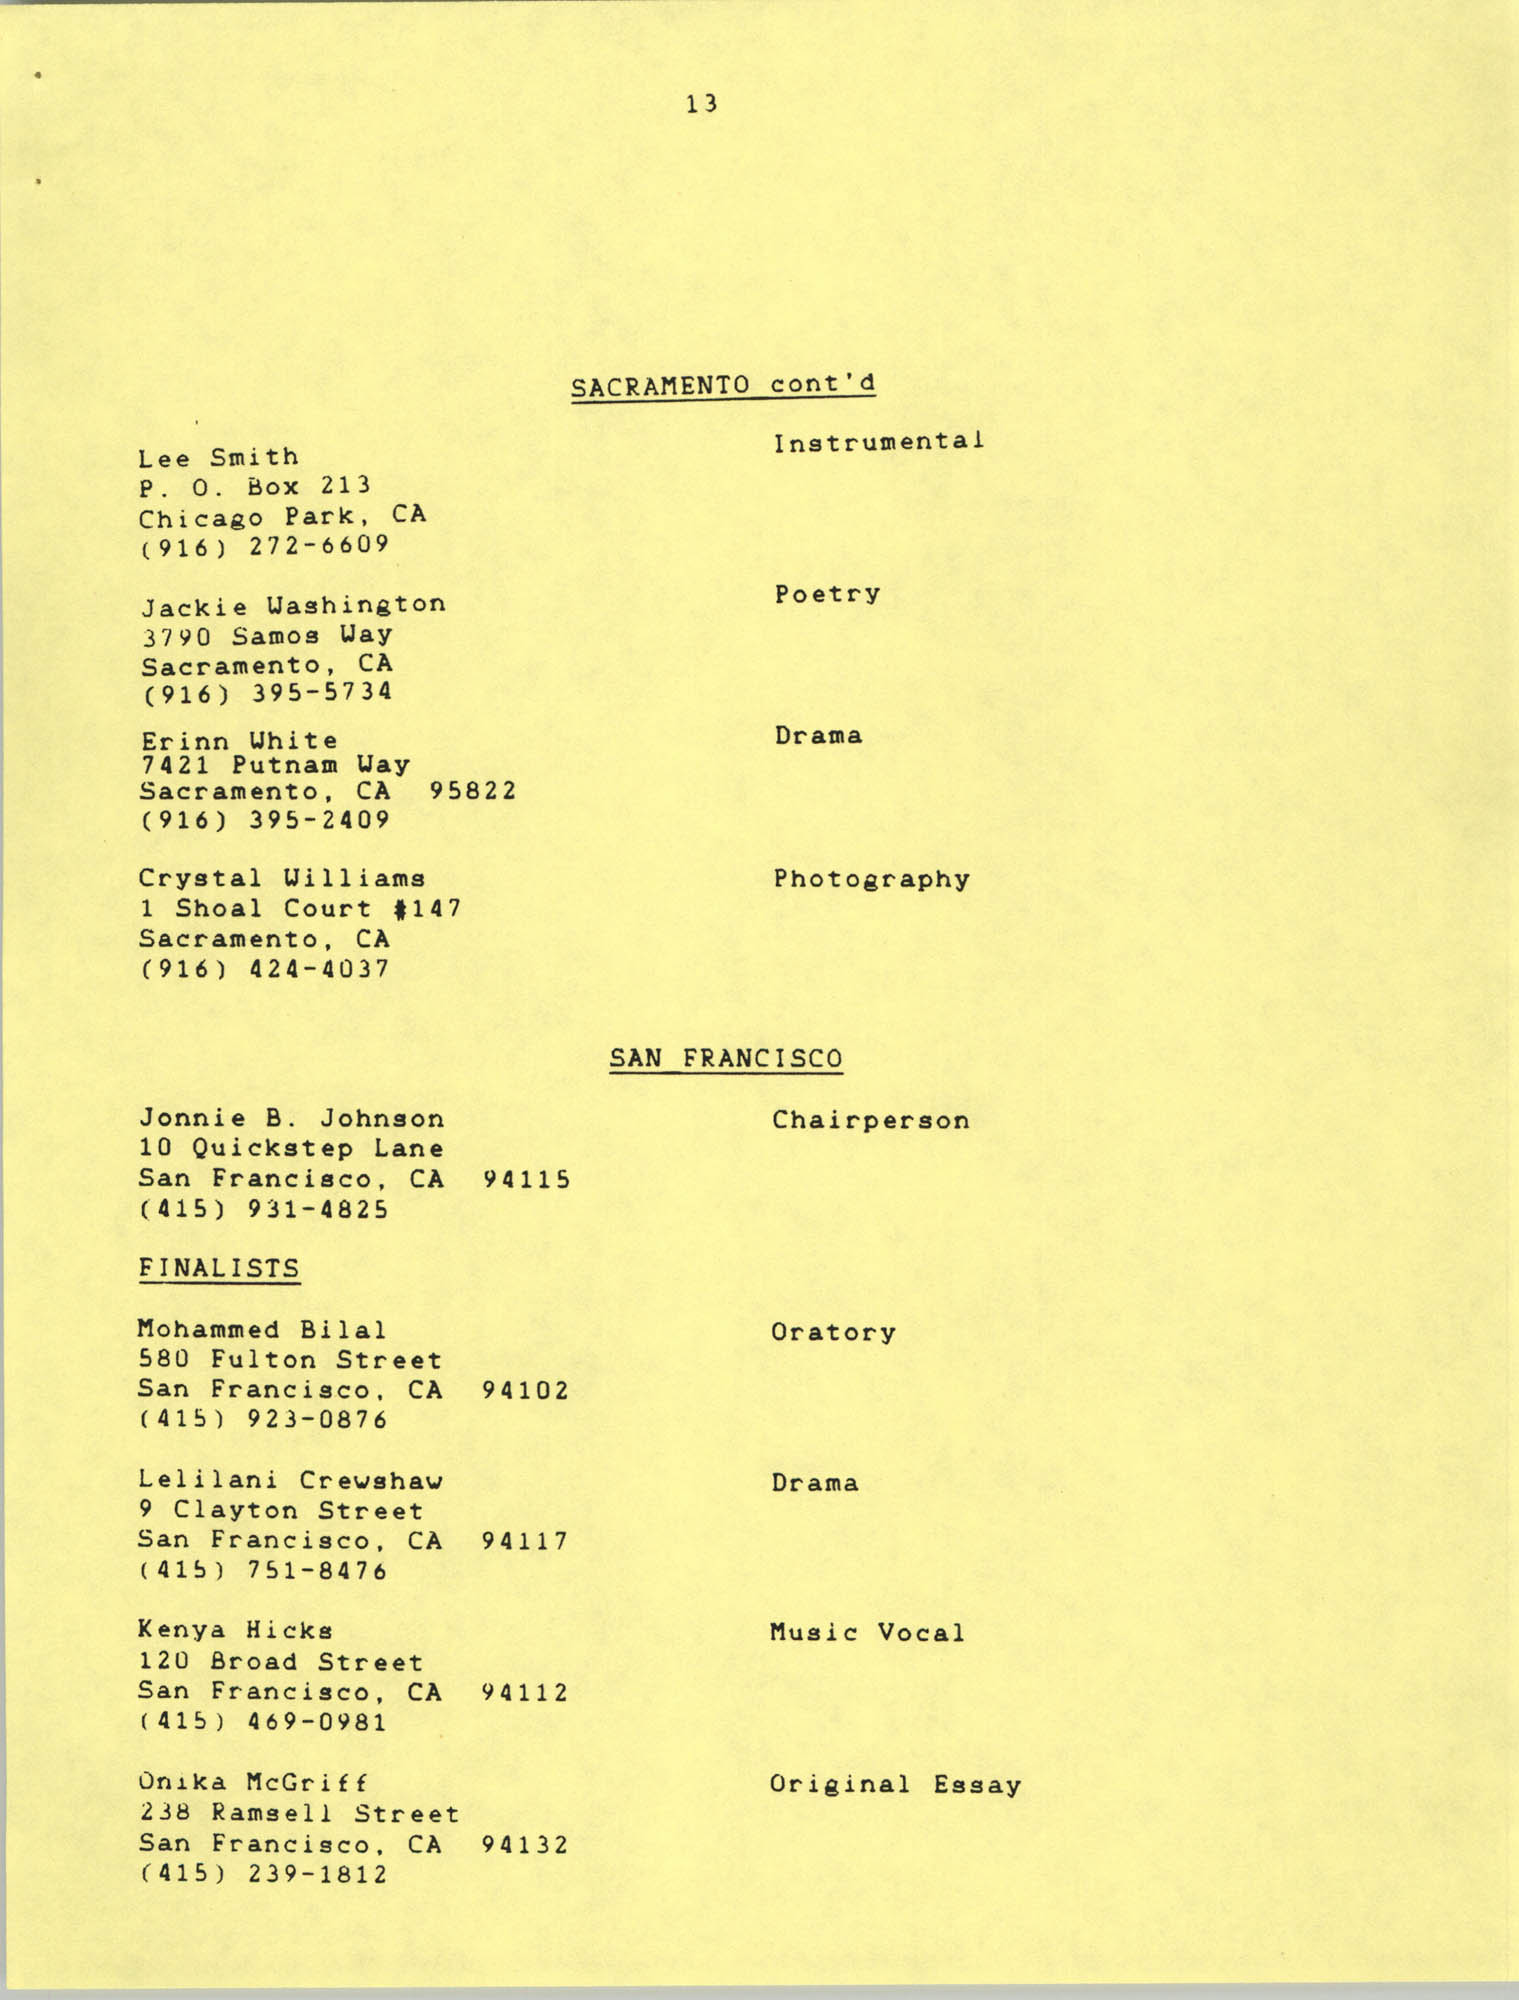 1987 Act-So Contestants, NAACP West Coast Region, Page 13